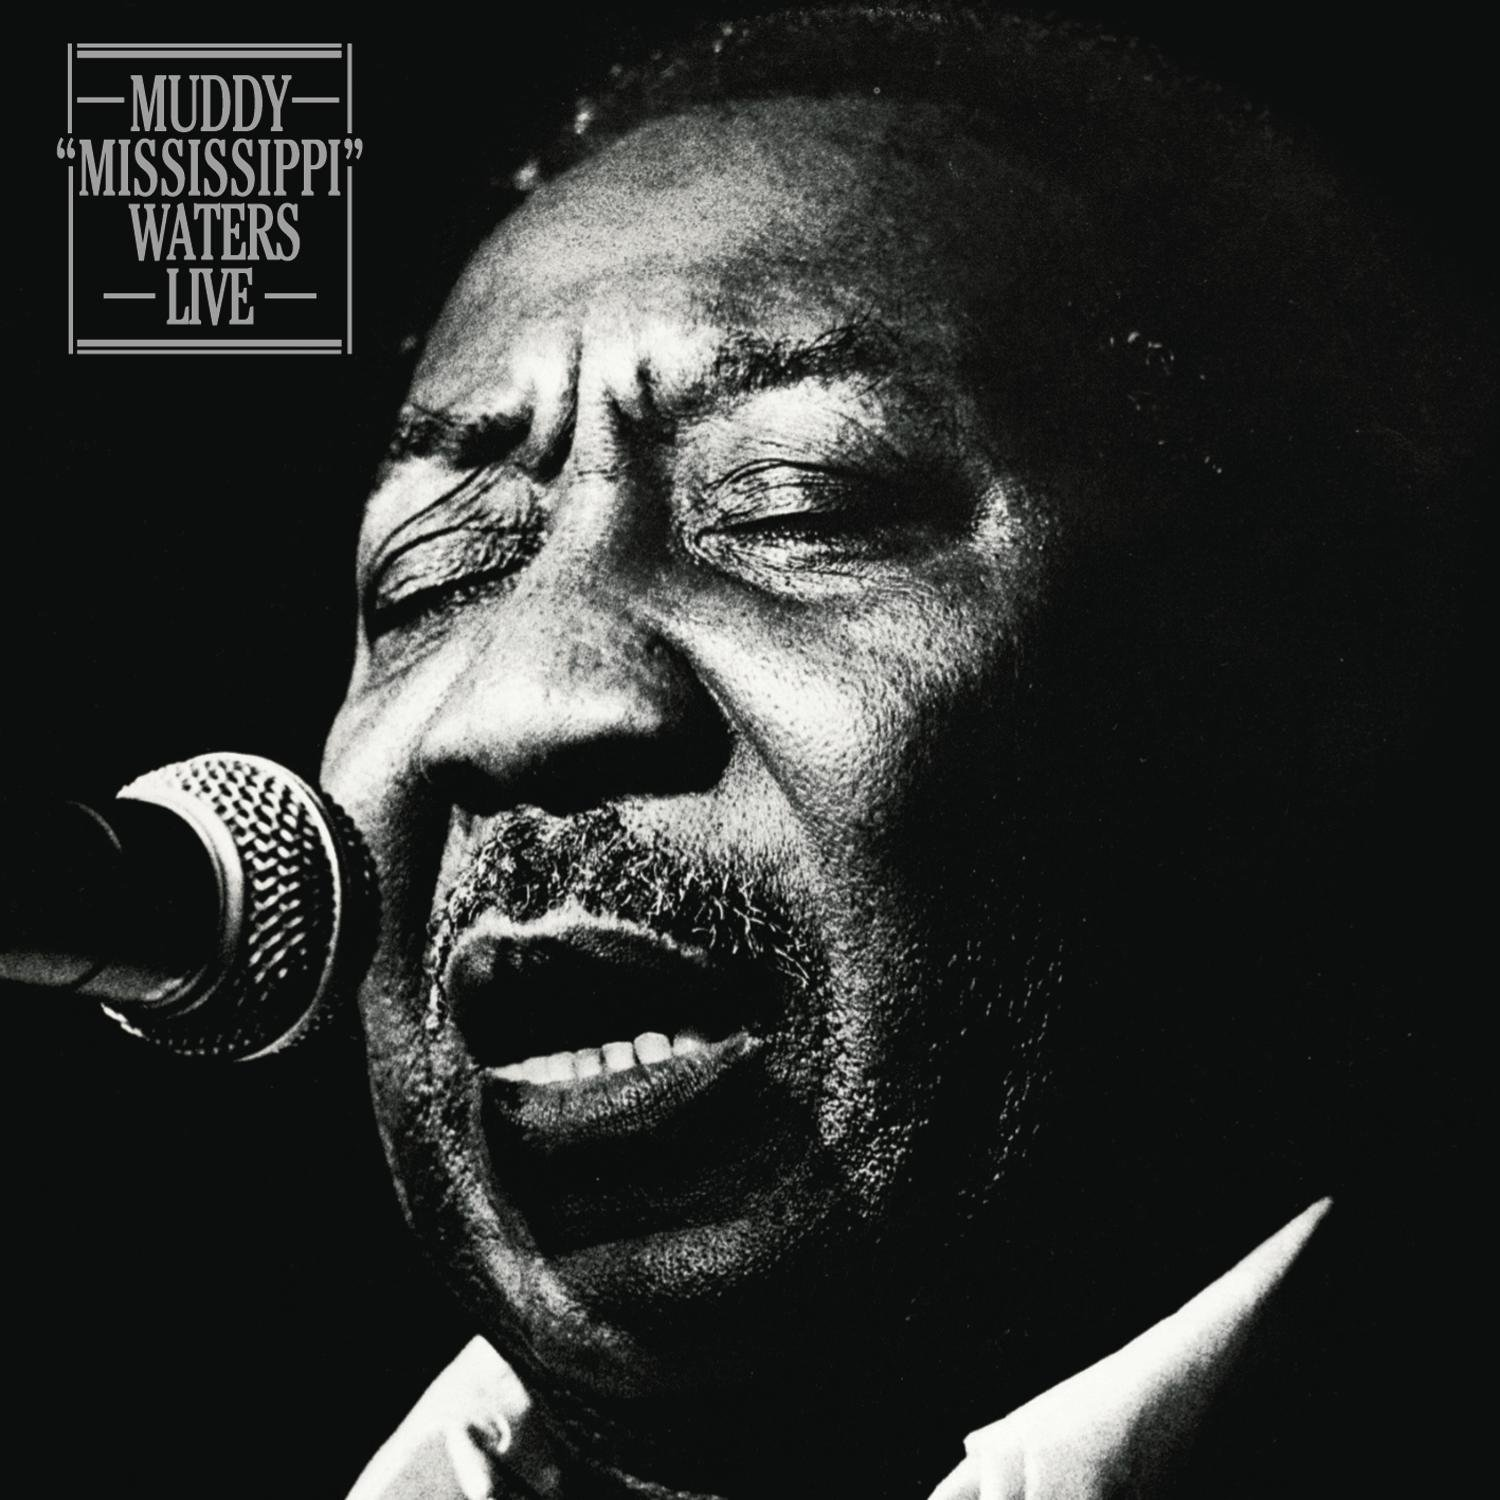 Muddy Mississippi Waters Live: Legacy Edition by Sony